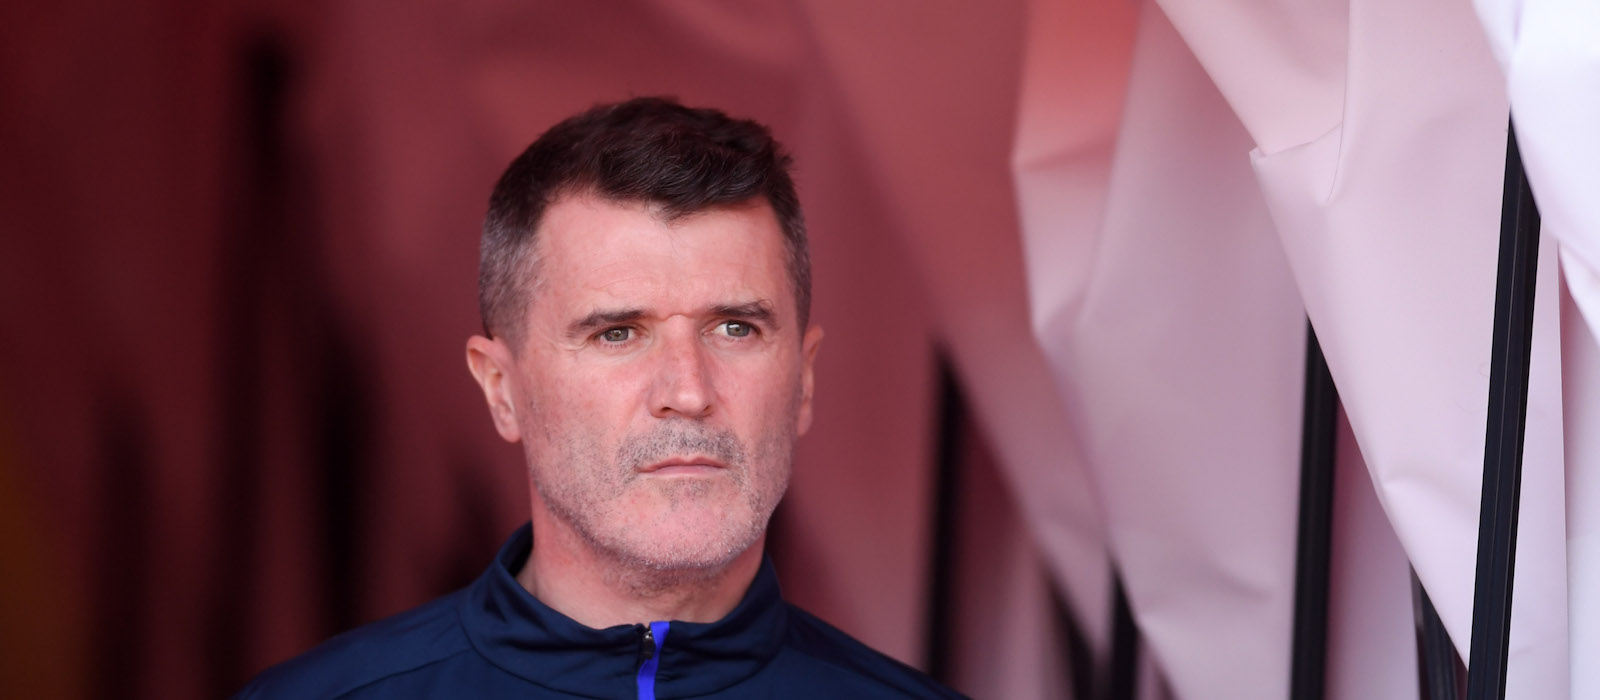 Roy Keane insists Manchester United have a long way to go